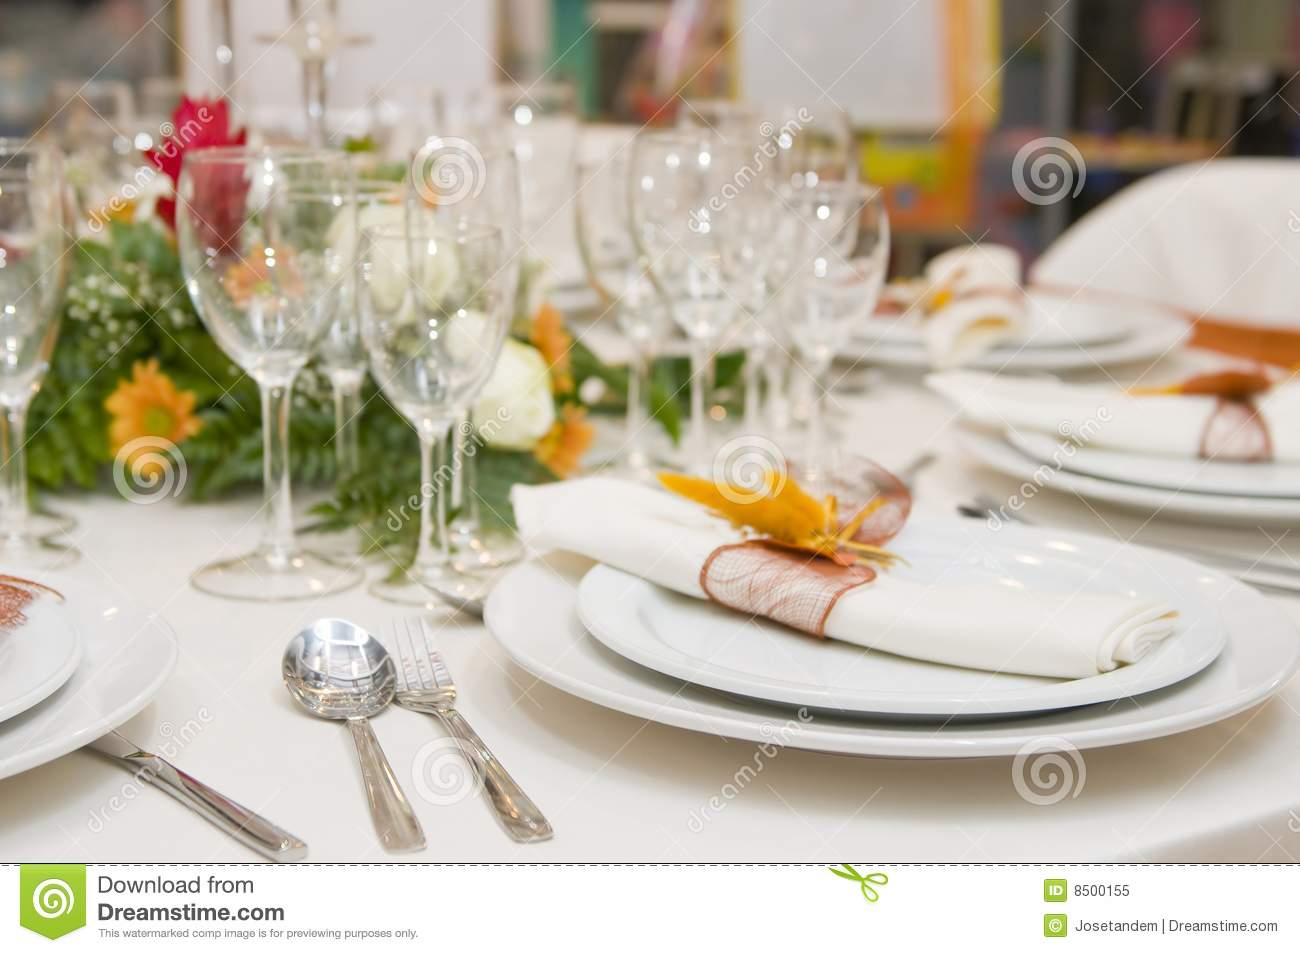 Fancy table set for a wedding celebration royalty free for Position verre sur table